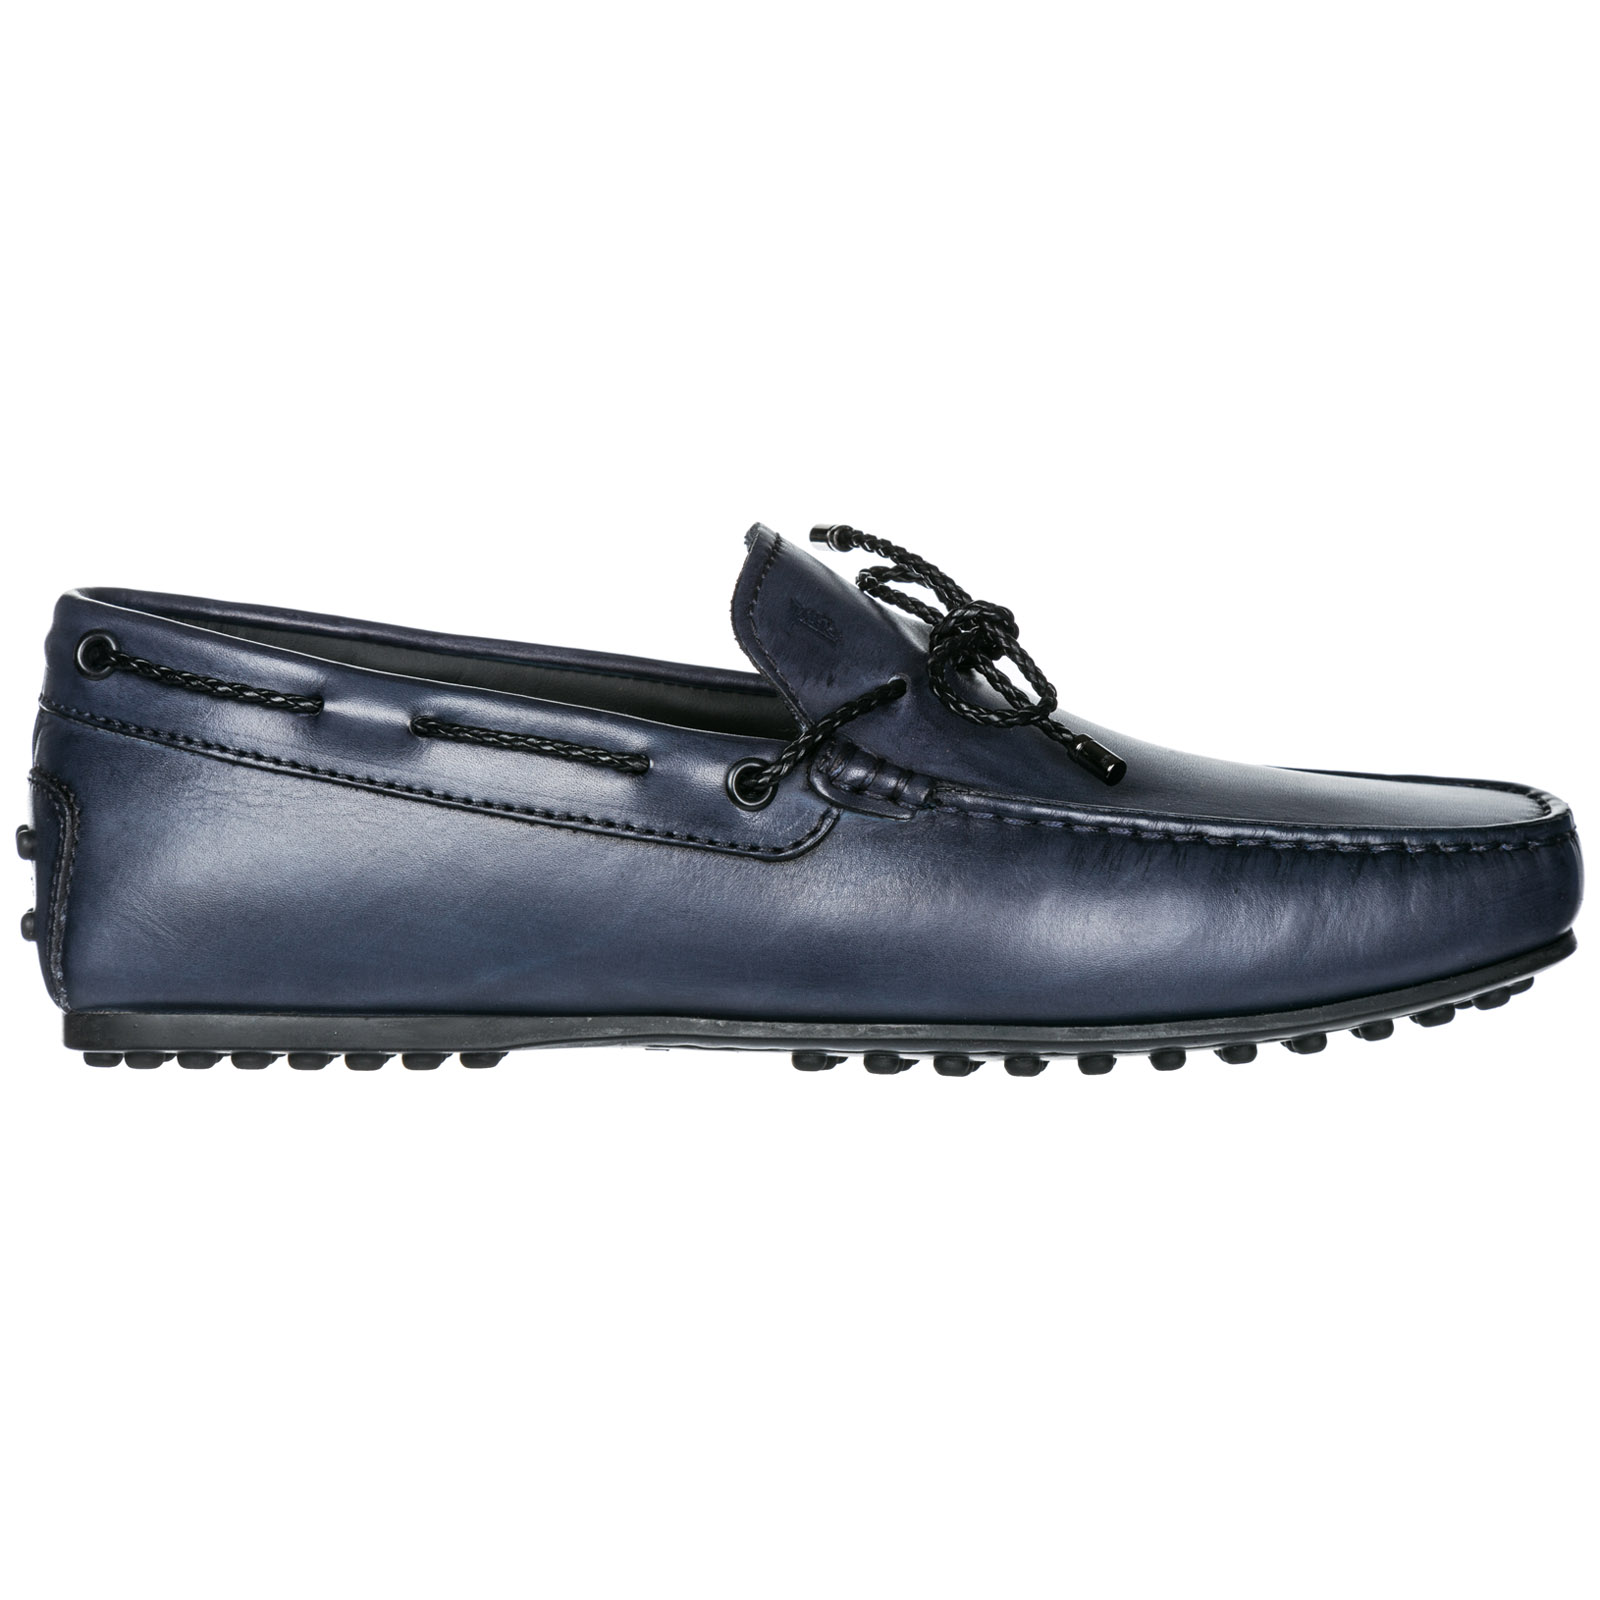 0009e2f28c9 Tod s Men s leather loafers moccasins laccetto scooby doo city gommino